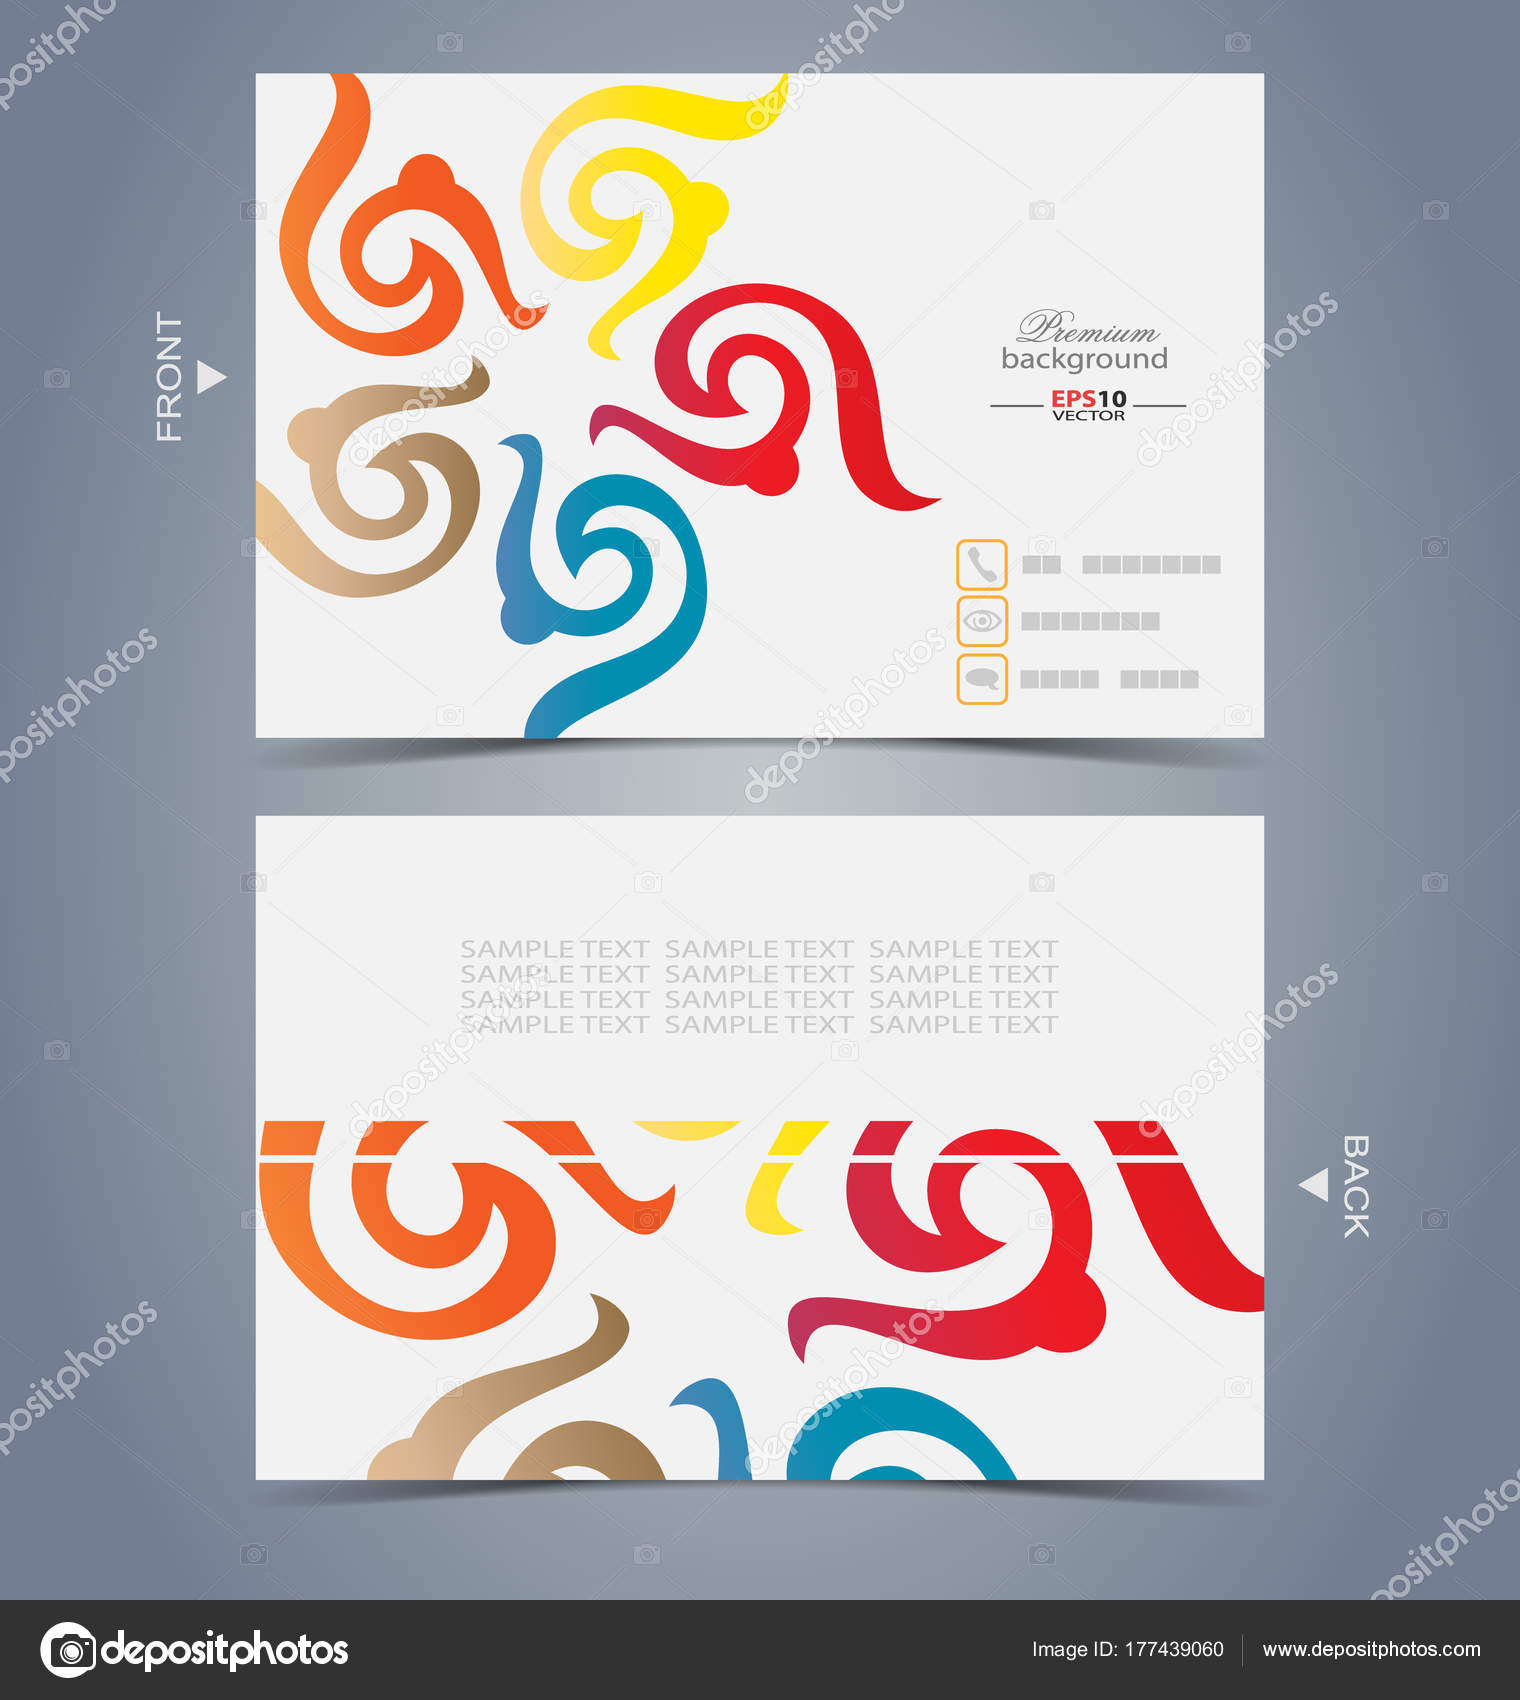 Elegant business card design template — Stock Vector © stocklady36 ...